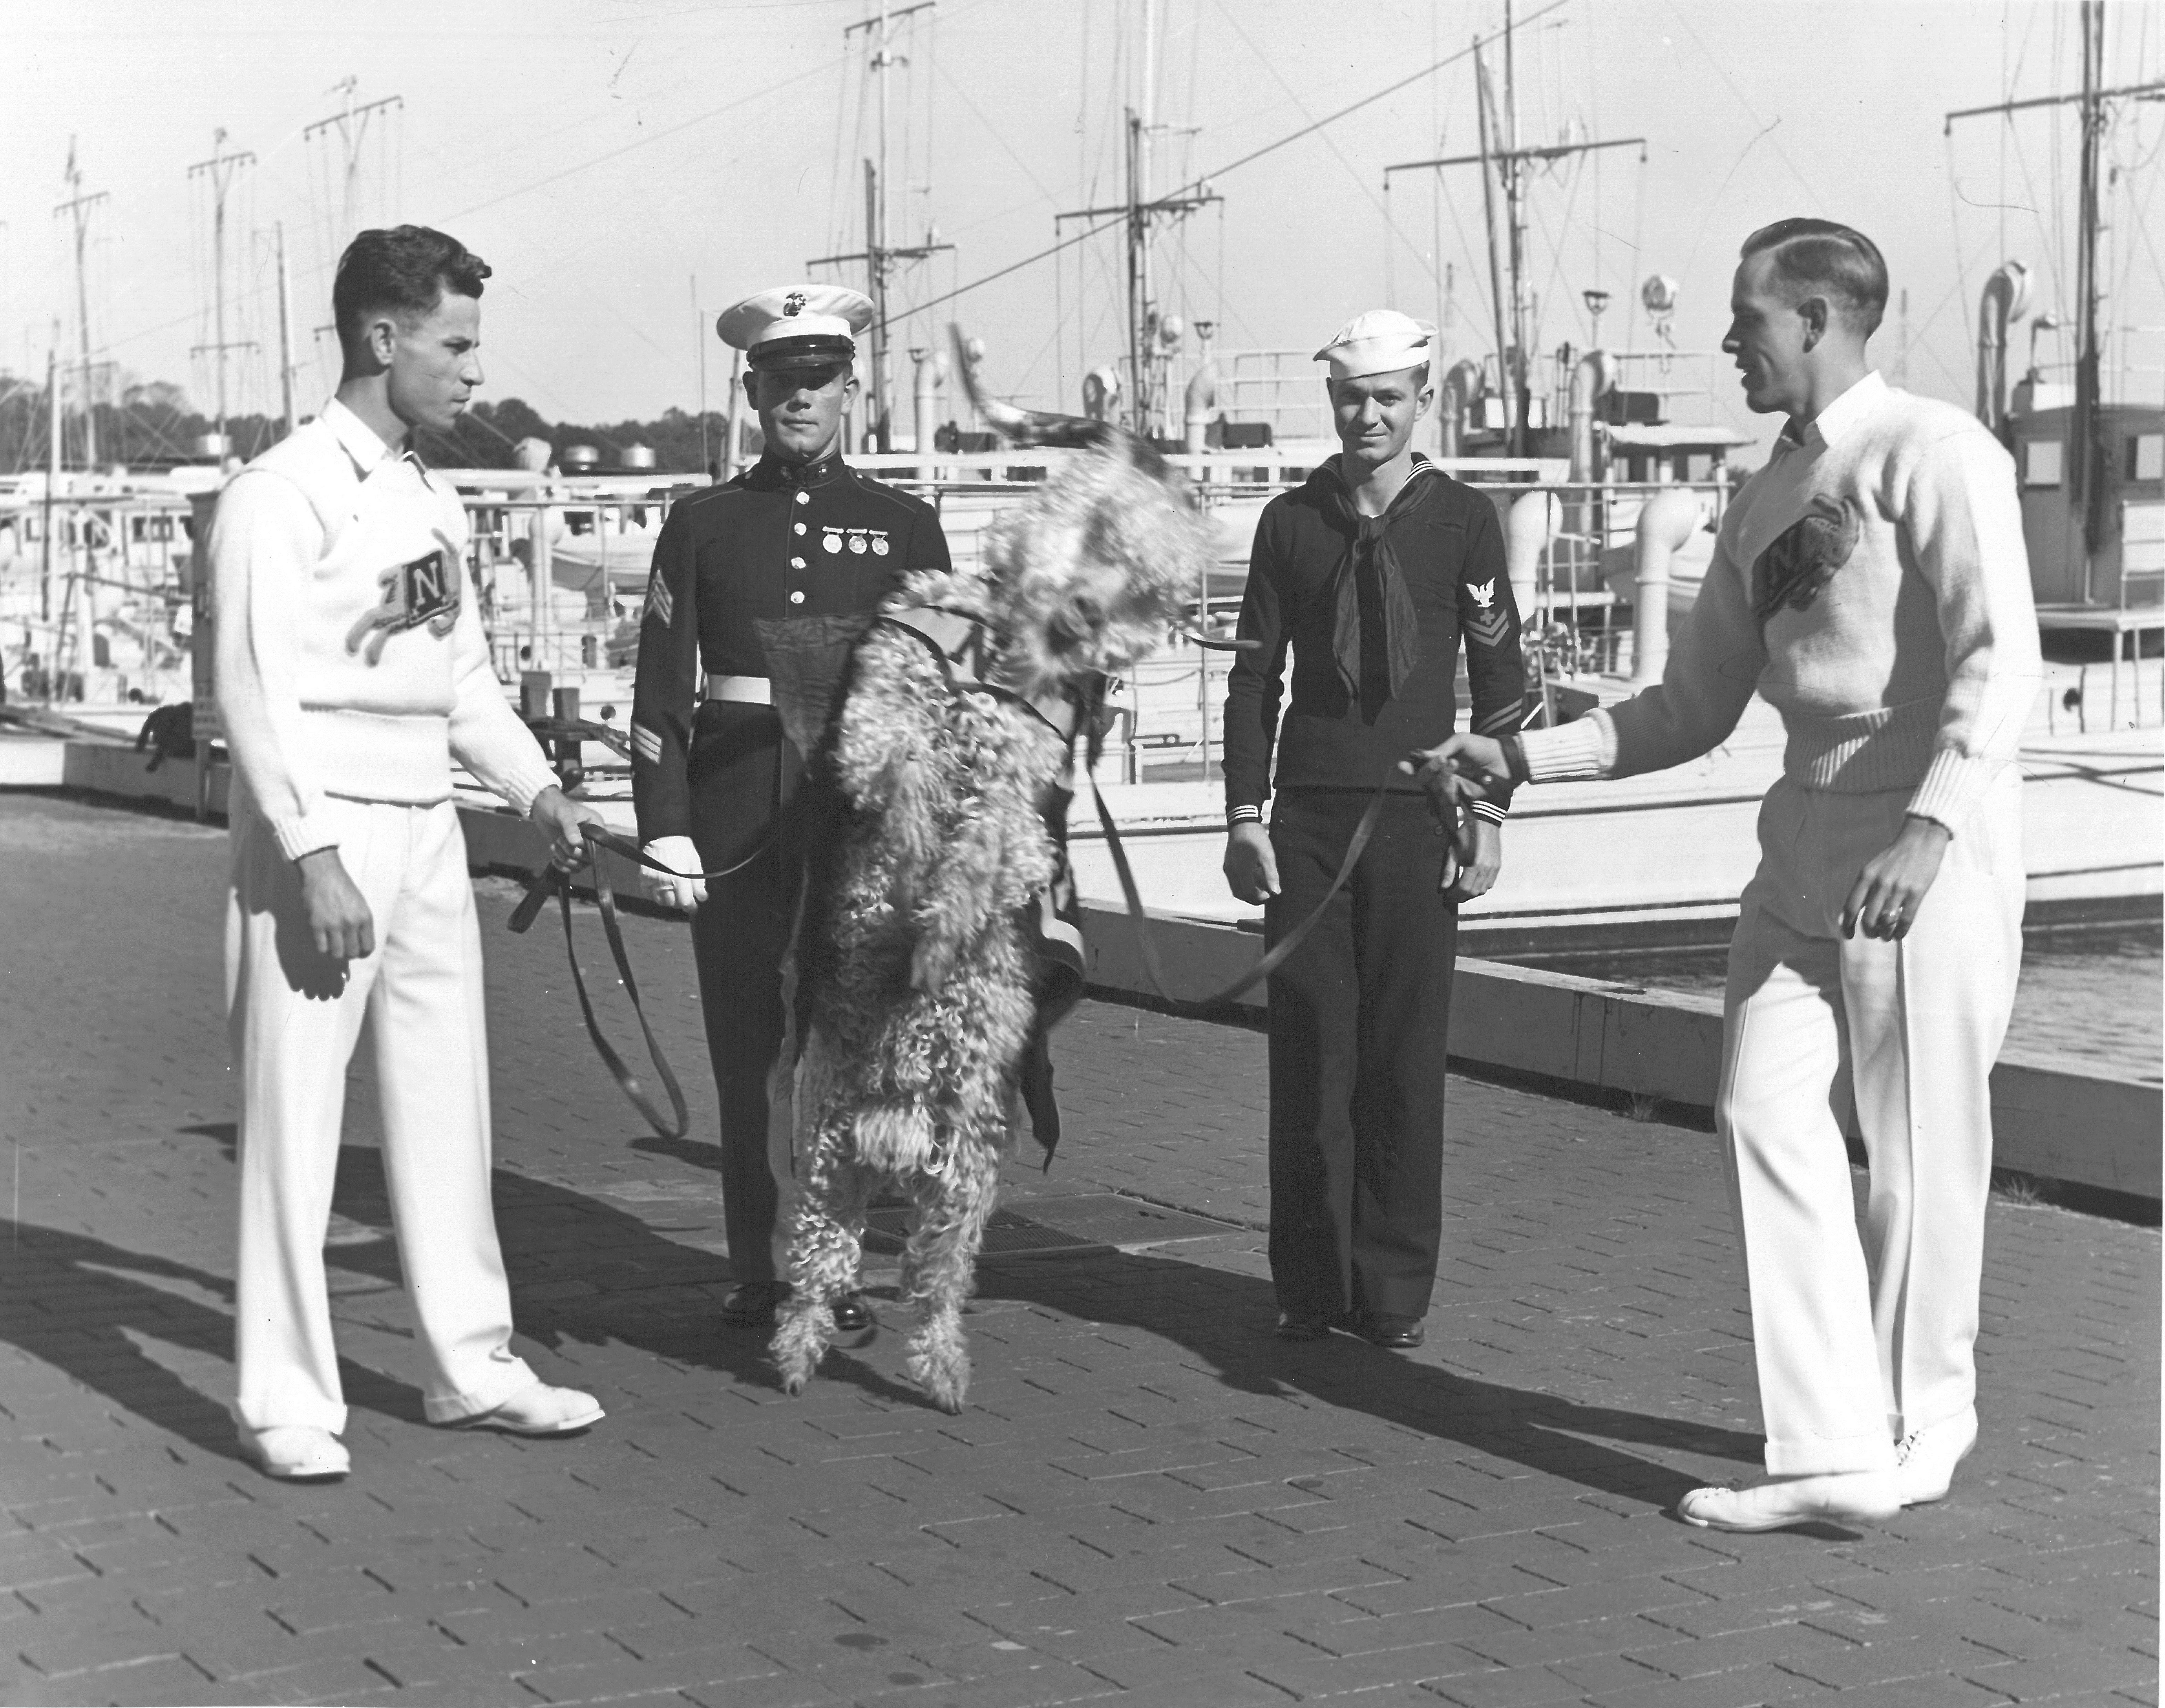 U.S. Naval Academy goat and goatkeepers in 1939.